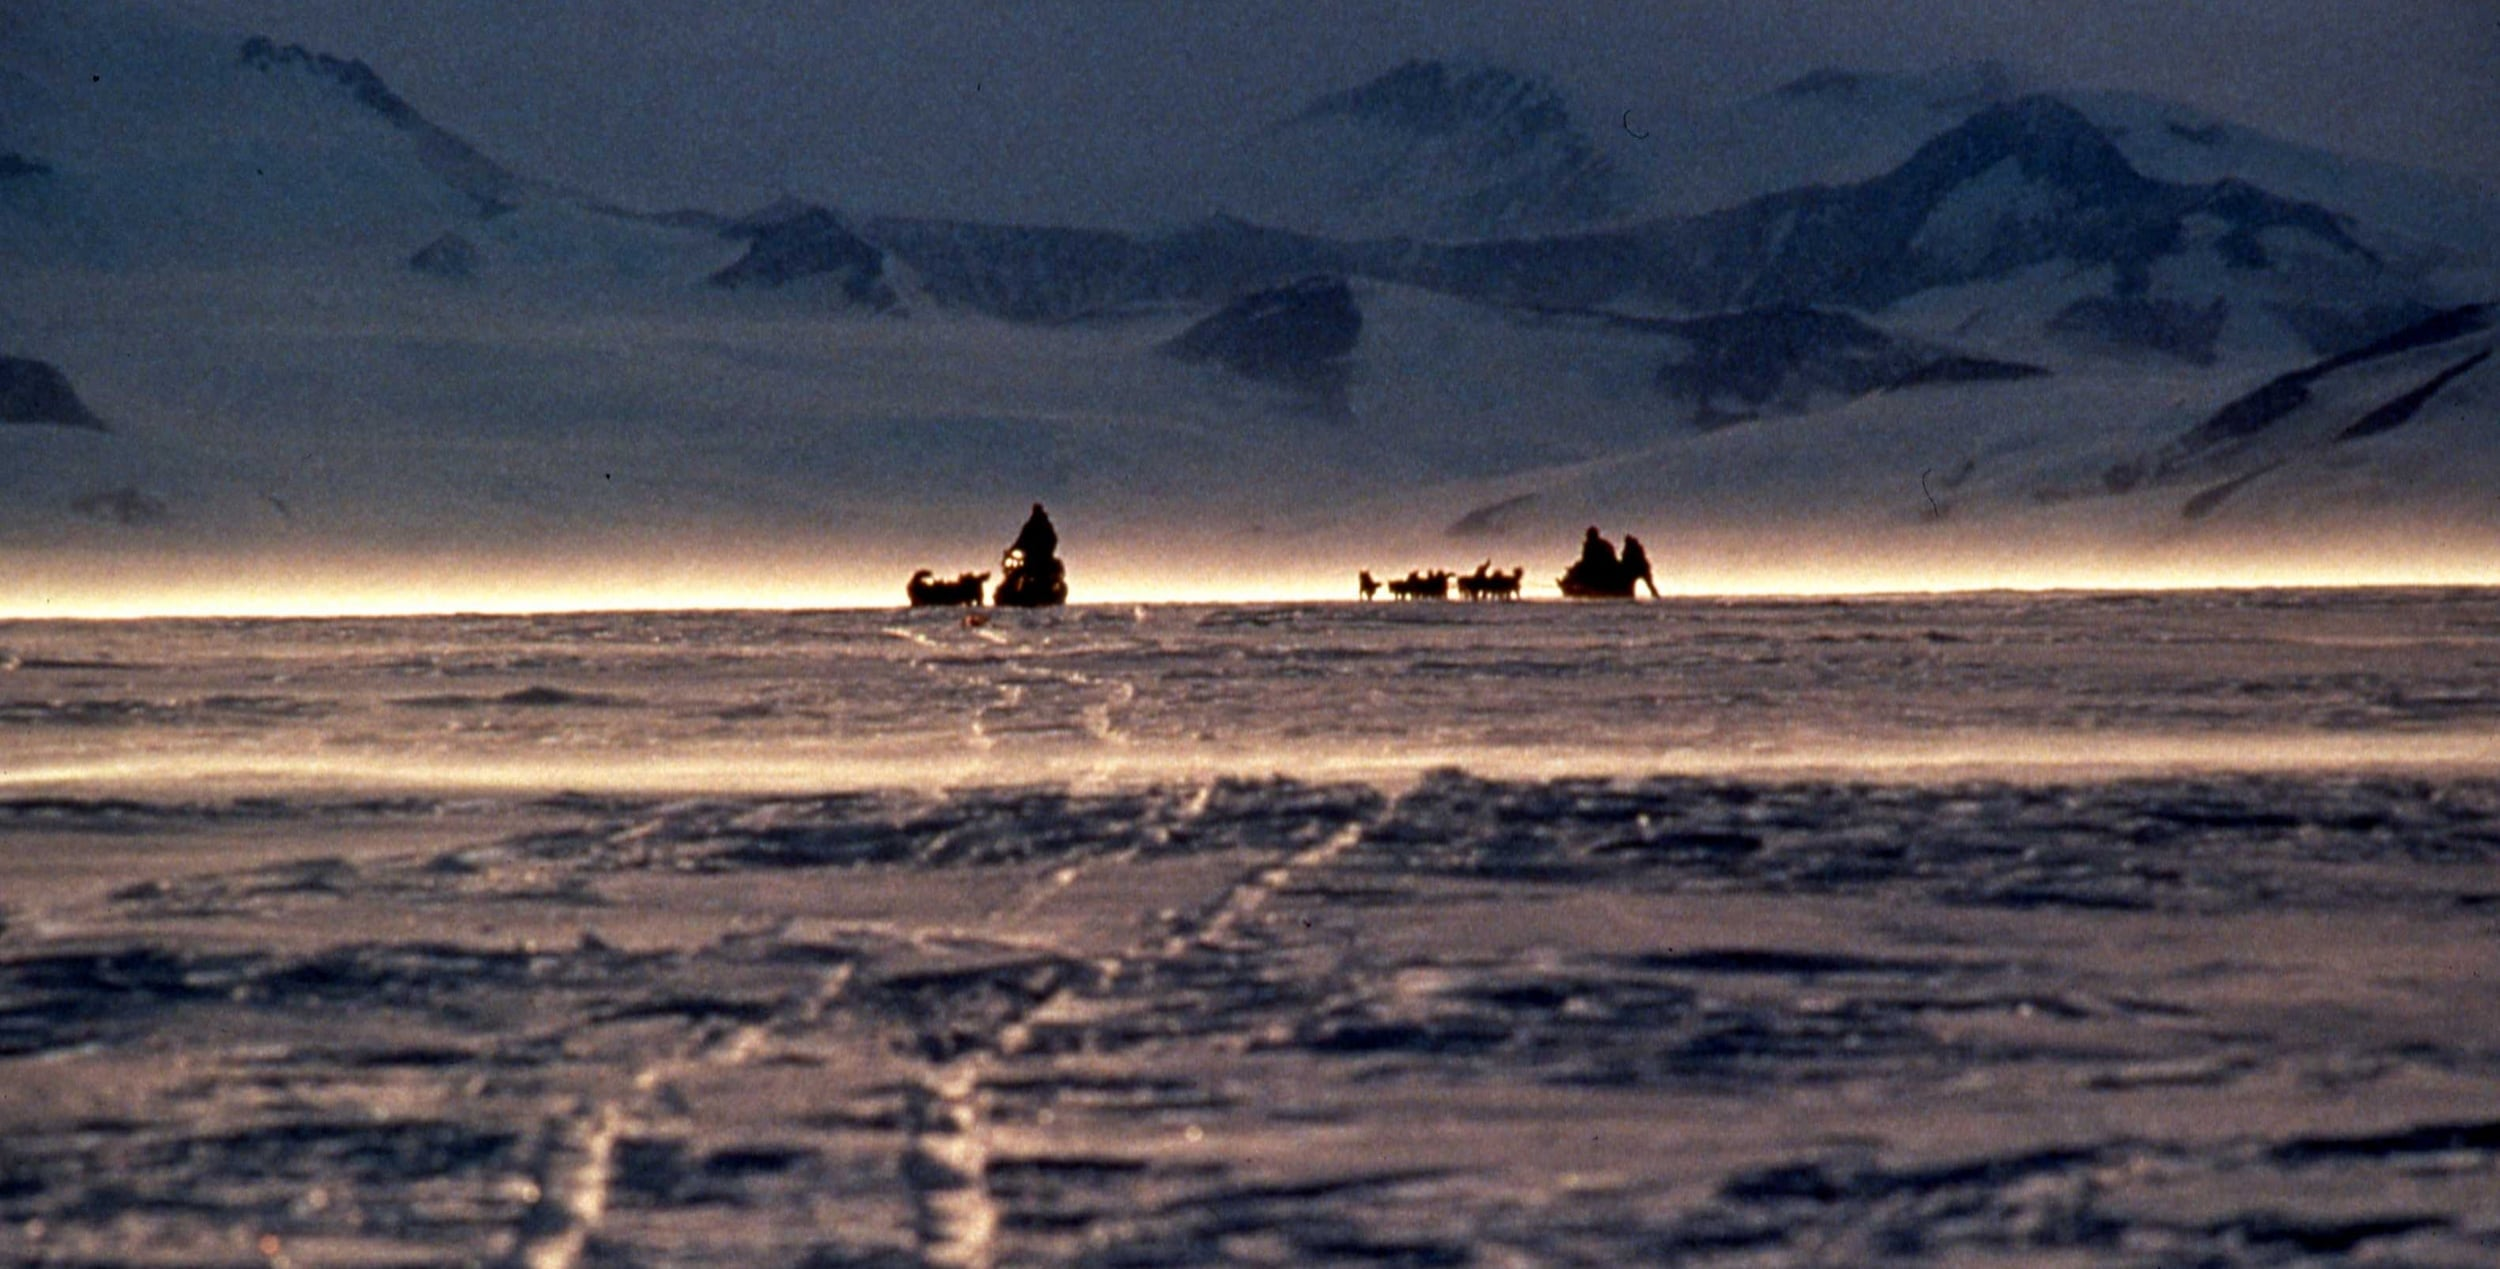 1990 International Trans-Antarctica Expedition heads from the Larsen Ice Shelf to the mountains on the Antarctic Peninsula. ©Will Steger by Rick Ridgeway